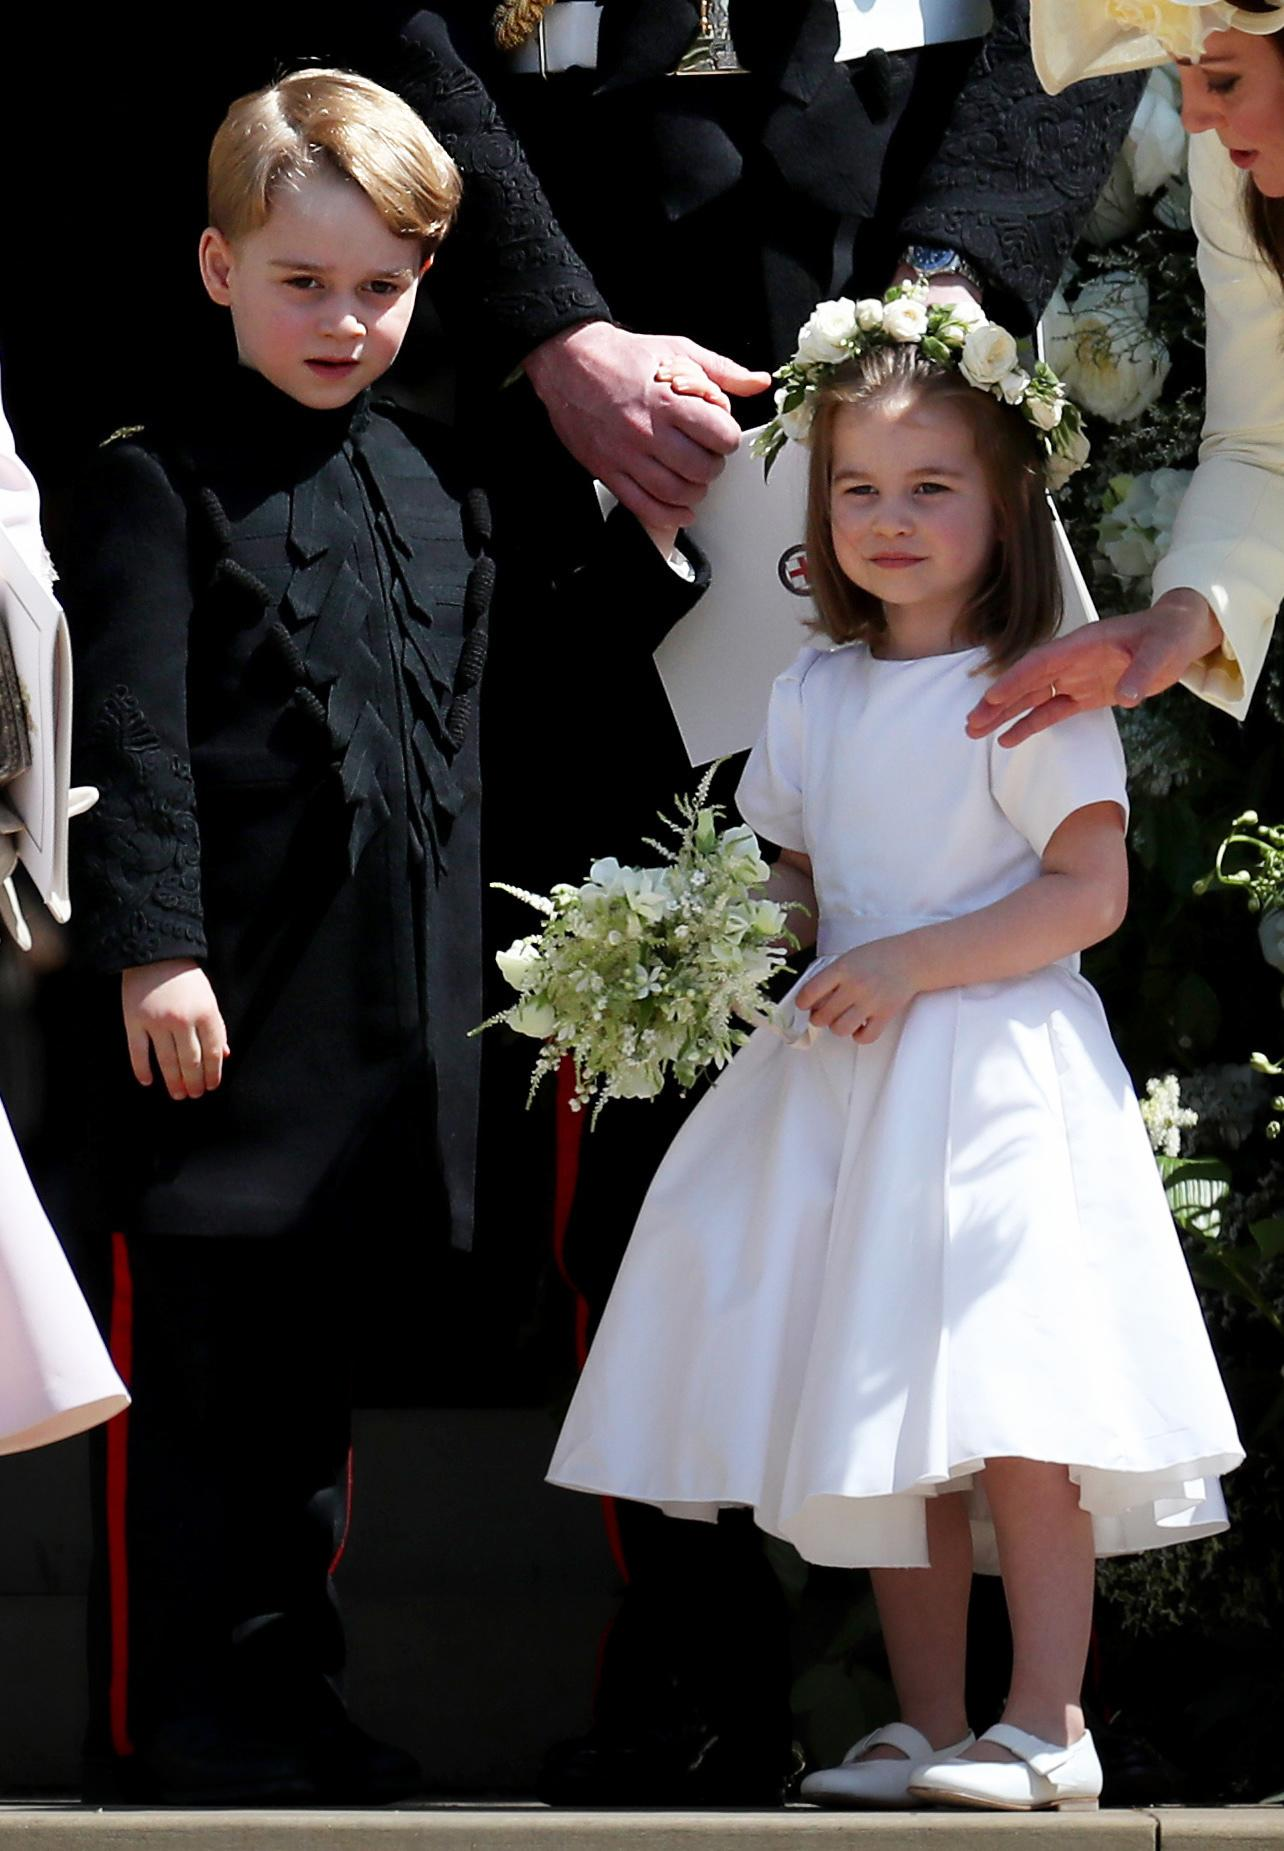 File photo dated 19/05/18 of Prince George and Princess Charlotte at the wedding of Prince Harry and Meghan Markle.